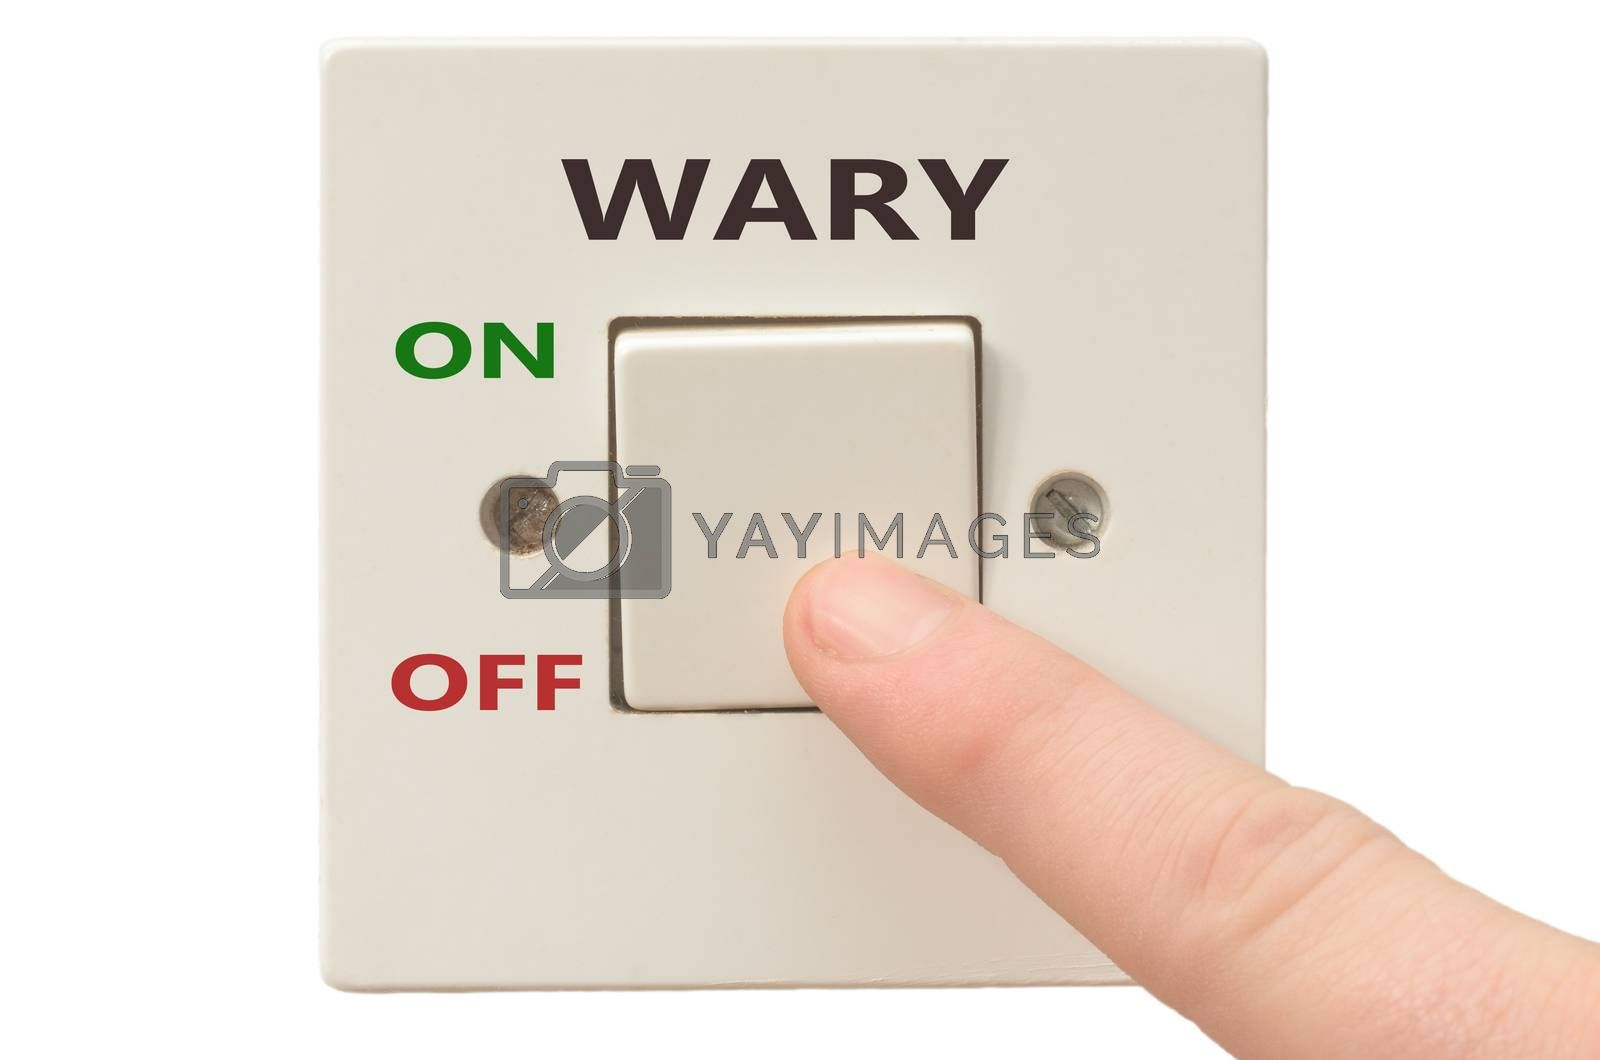 Turning off Wary with finger on electrical switch